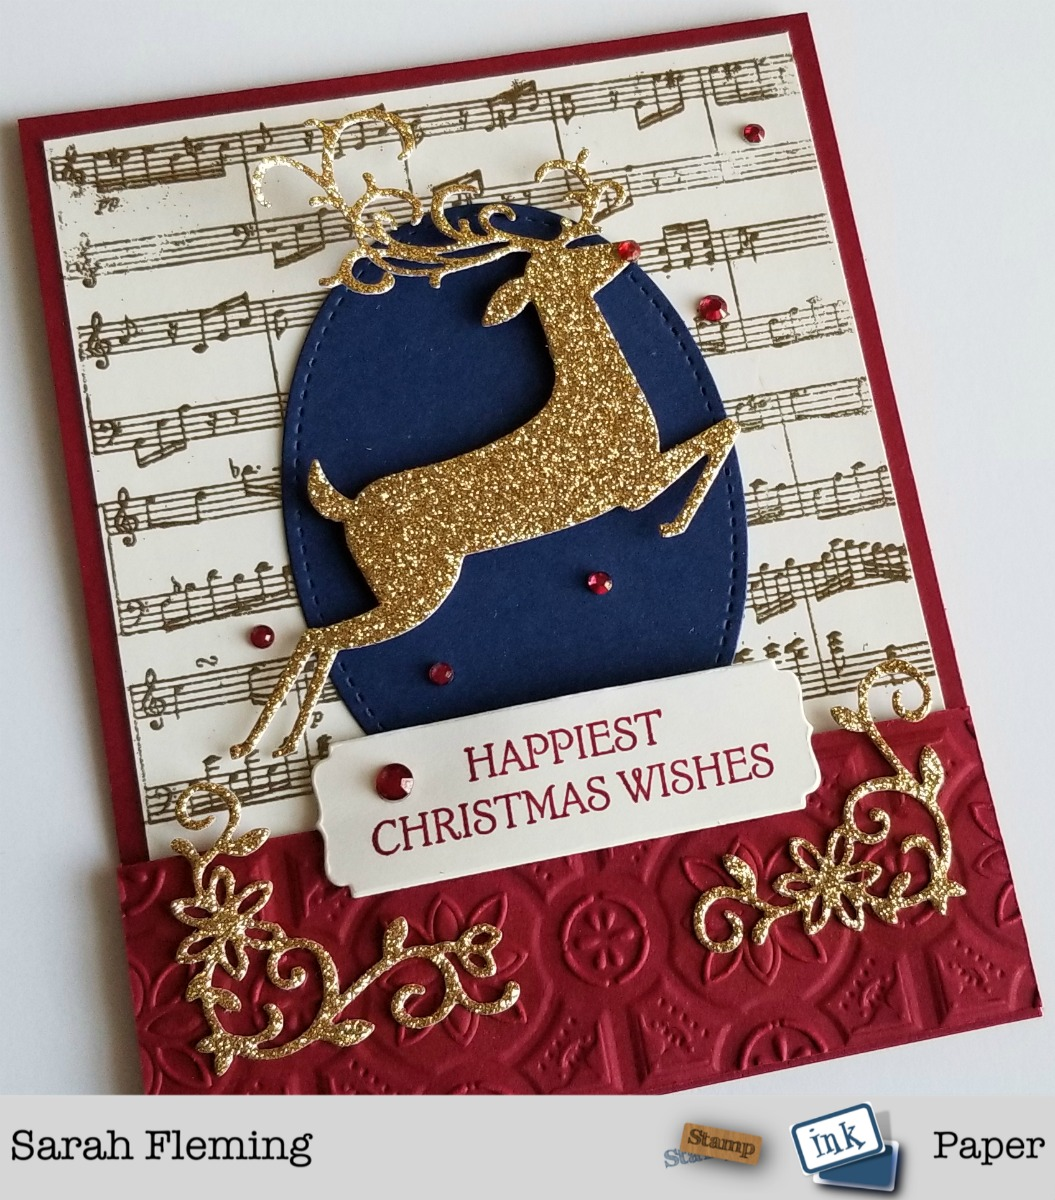 Stampin' Up! handmade Christmas card featuring heat embossing and Dashing Deer bundle with Detailed Deer thinlits, Sheet Music background stamp, Tin Tile Dynamic embossing folder, Night Owl Thinlits - Sarah Fleming - Prepare to Dye Papercrafts